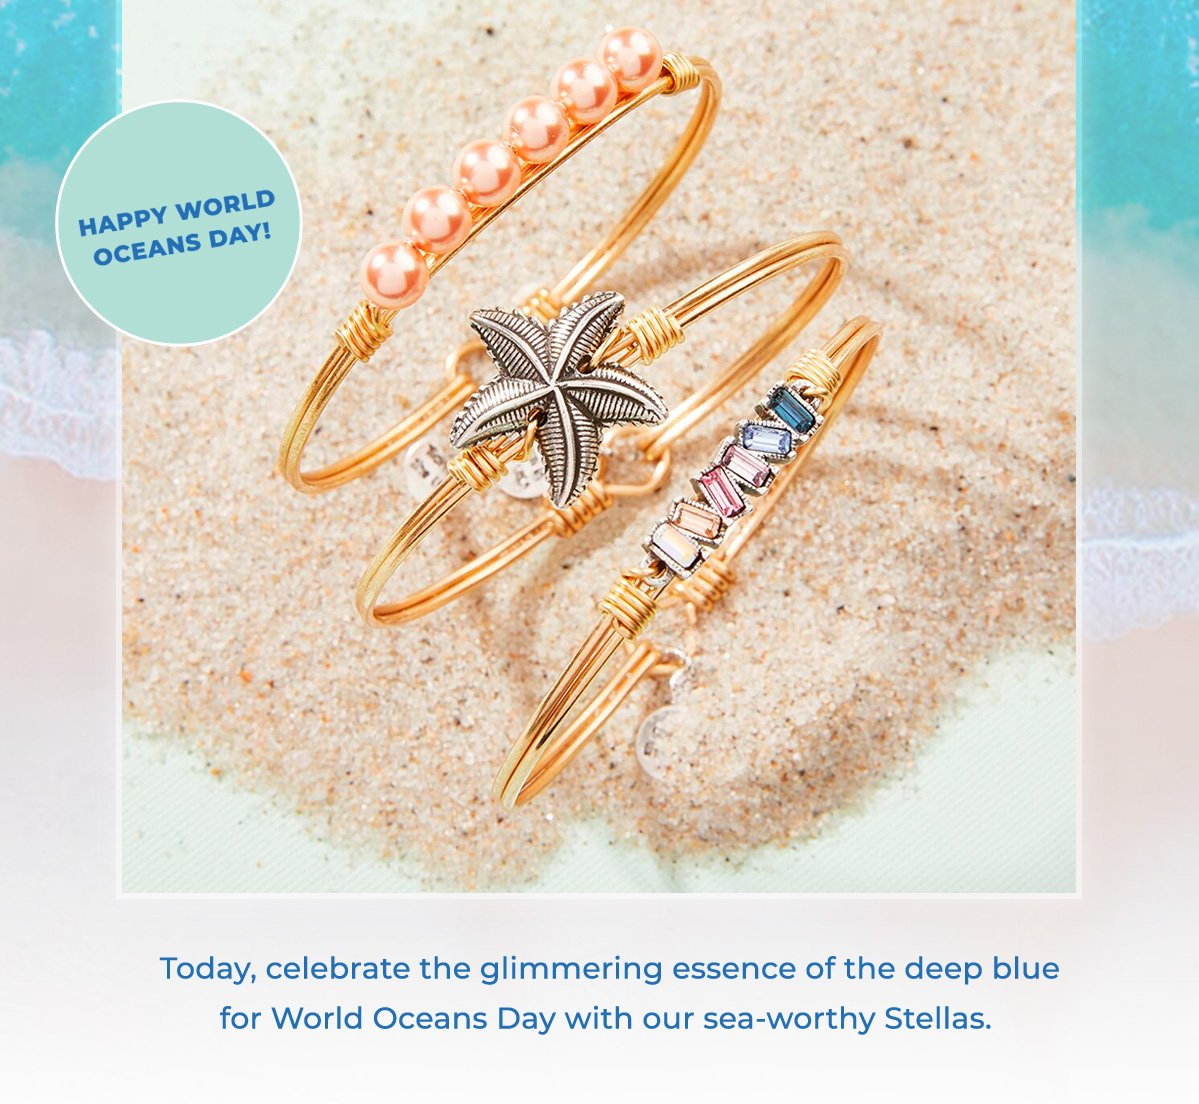 Today, celebrate the glimmering essence of the deep blue for World Oceans Day with our sea-worthy Stellas.